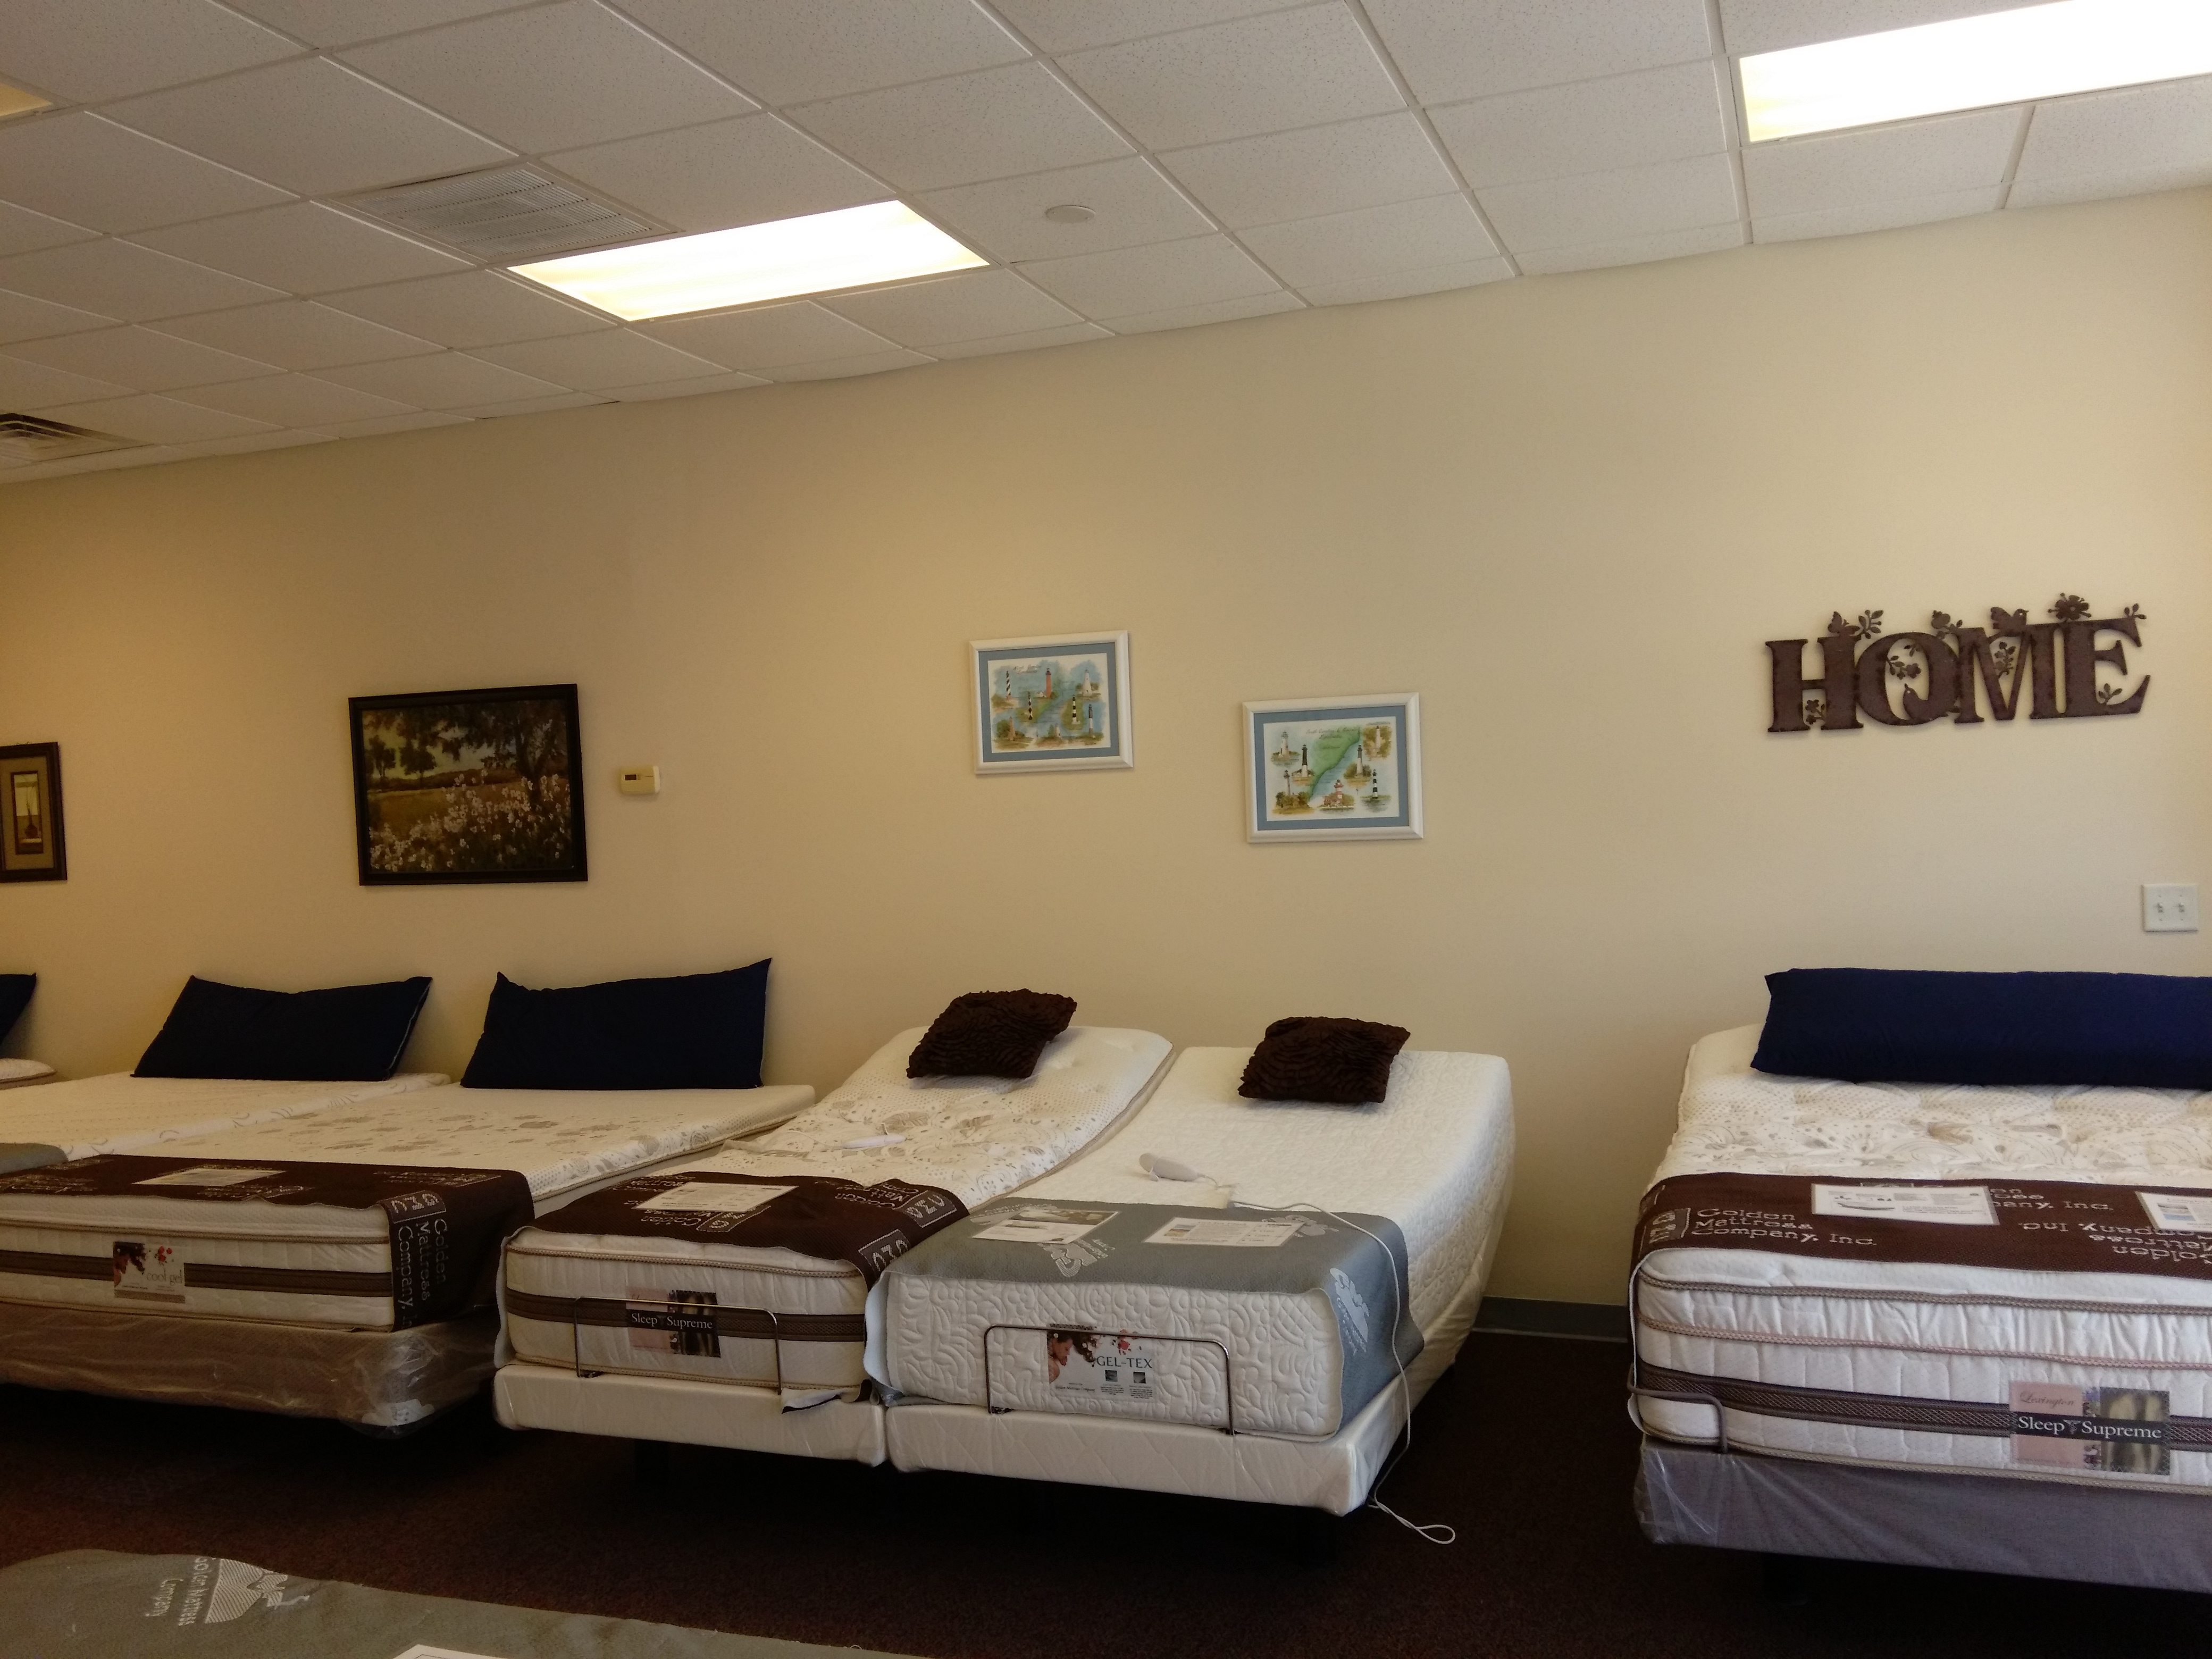 Mattress Wilmington Nc Exterior Featured Image Photo Of Cape Fear Bedding Wilmington Nc United